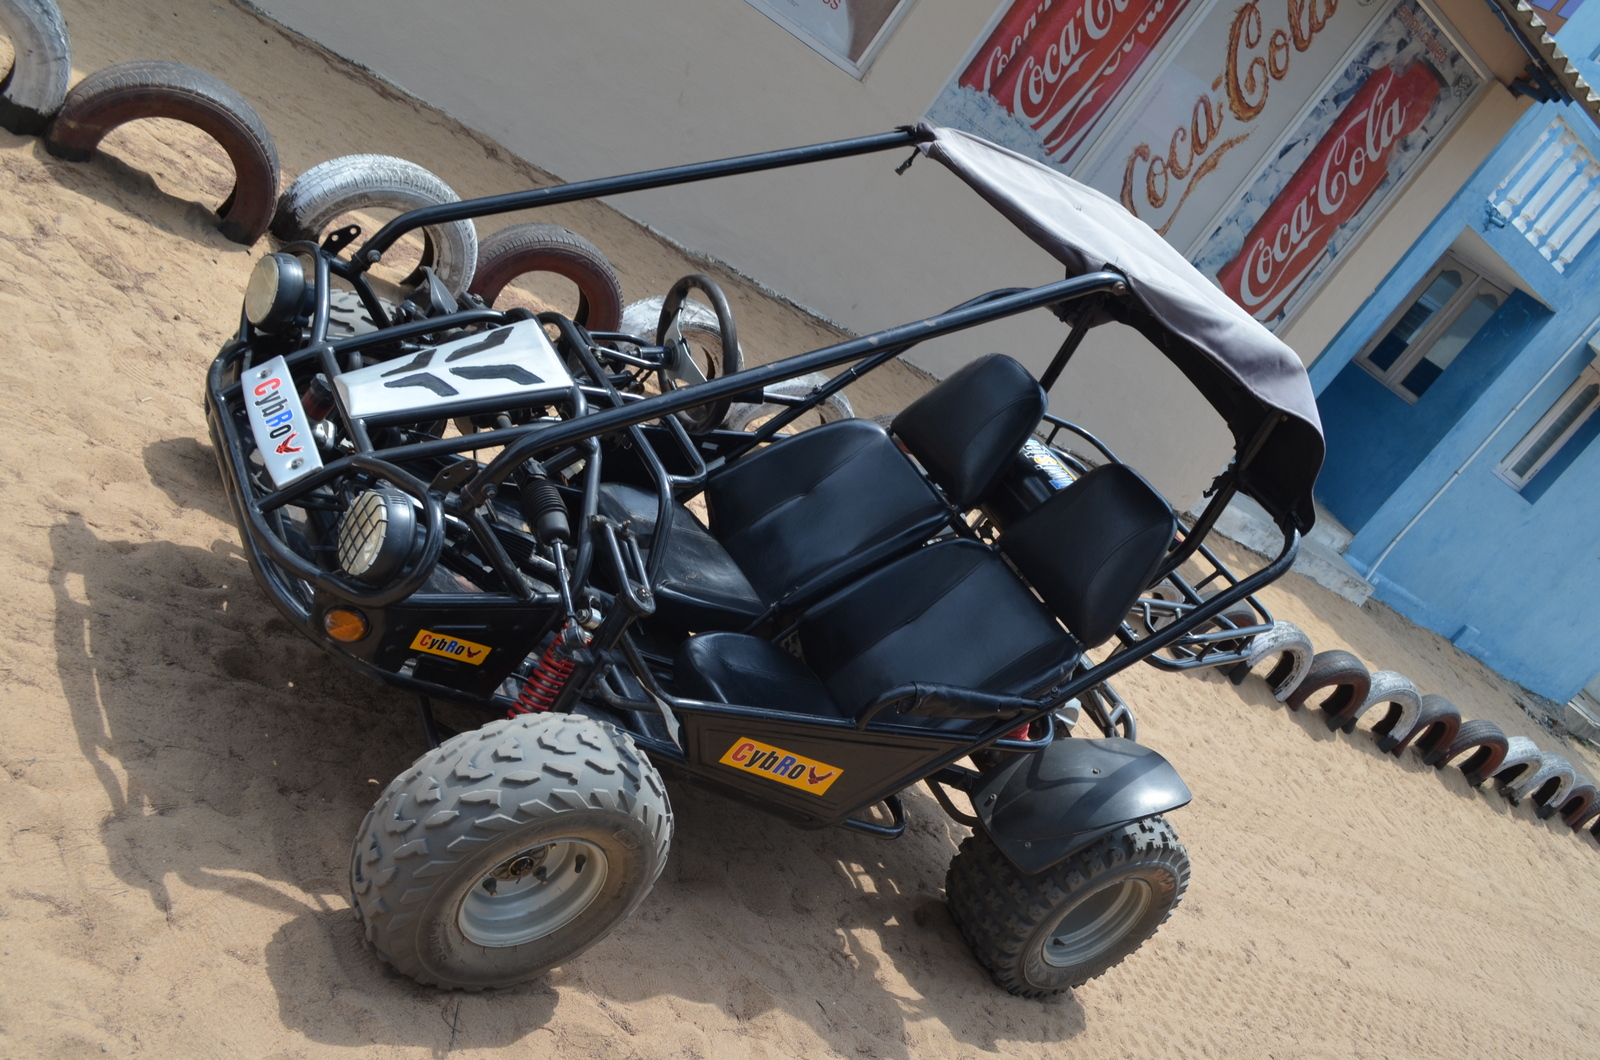 Used Honda Odyssey Go Karts For Sale | Autos Post